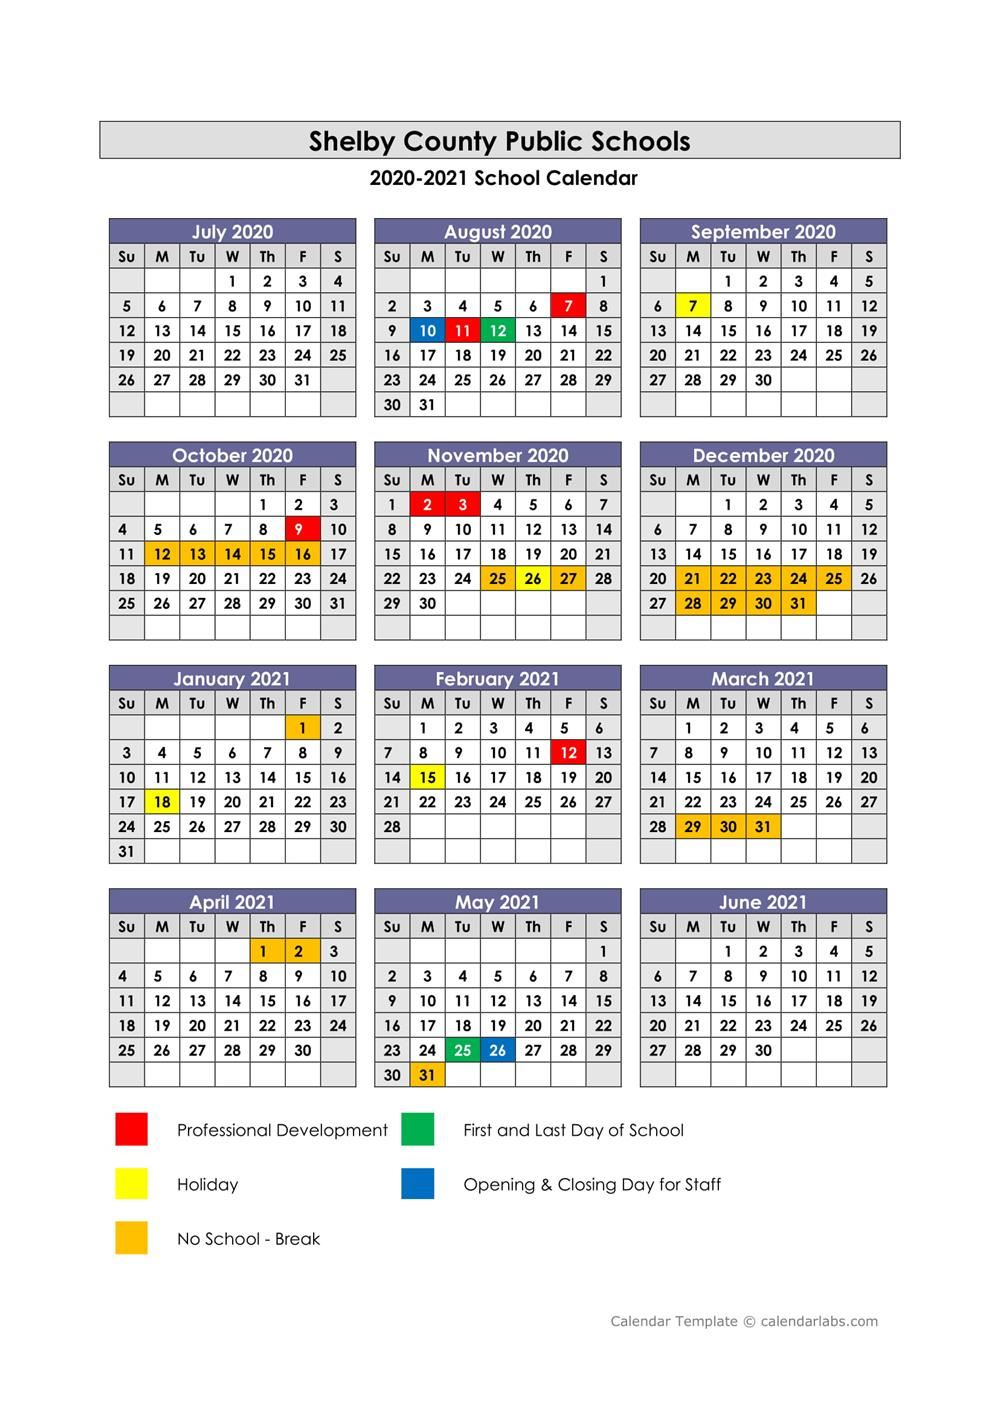 Shelby County Public Schools / Calendar Intended For West Clark Community School Calendar 2021 20